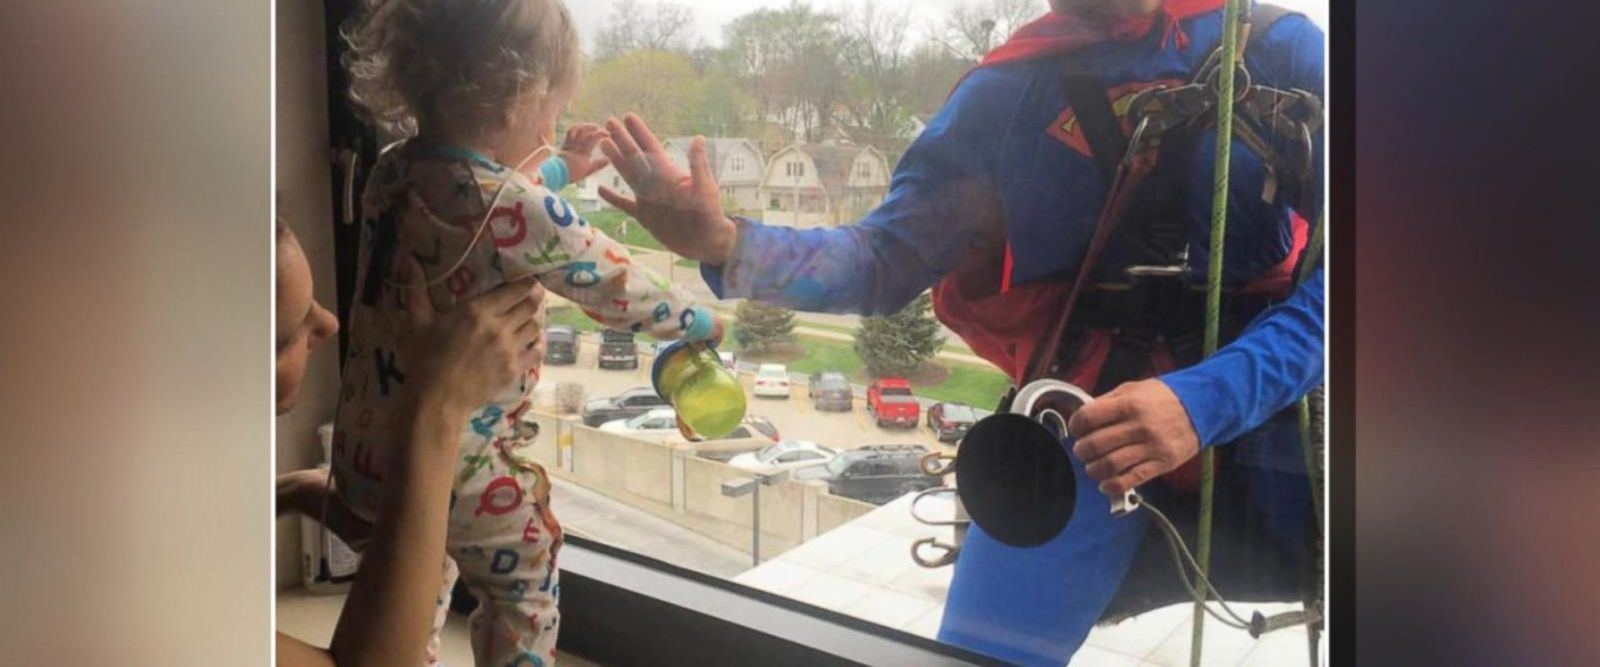 VIDEO: 'Superman' visits tiny cancer patient at hospital window